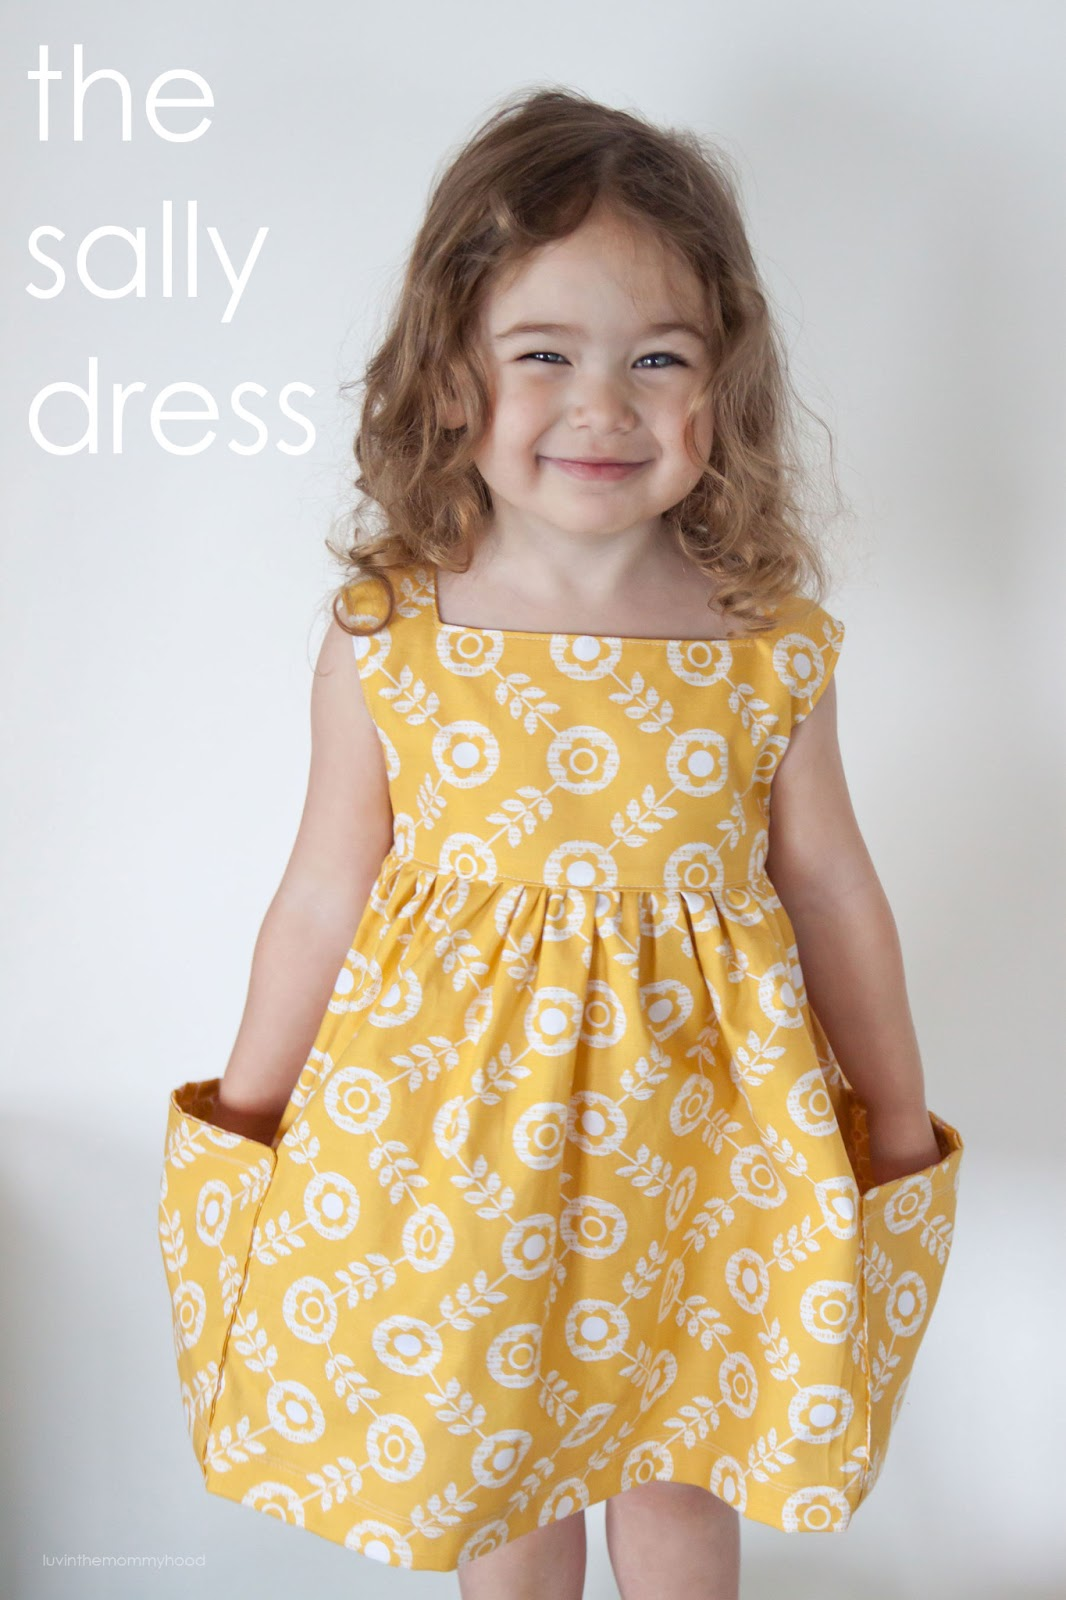 sally dress by luvinthemommyhood.com